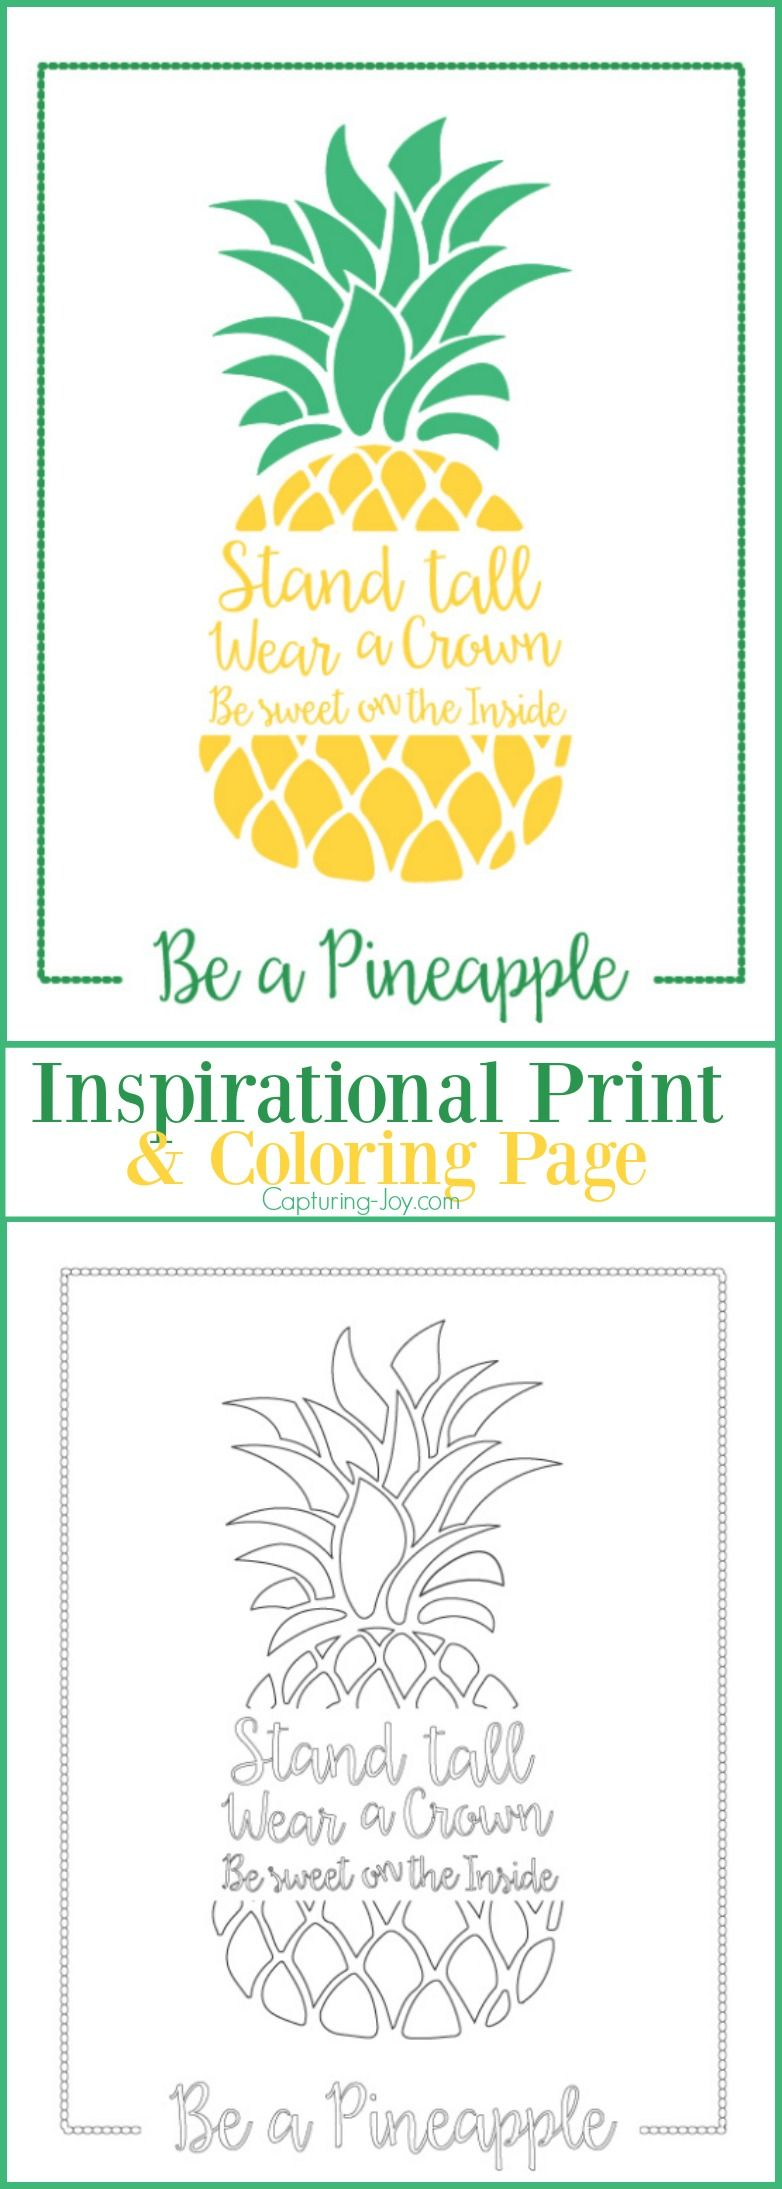 Be a Pineapple Inspirational Print